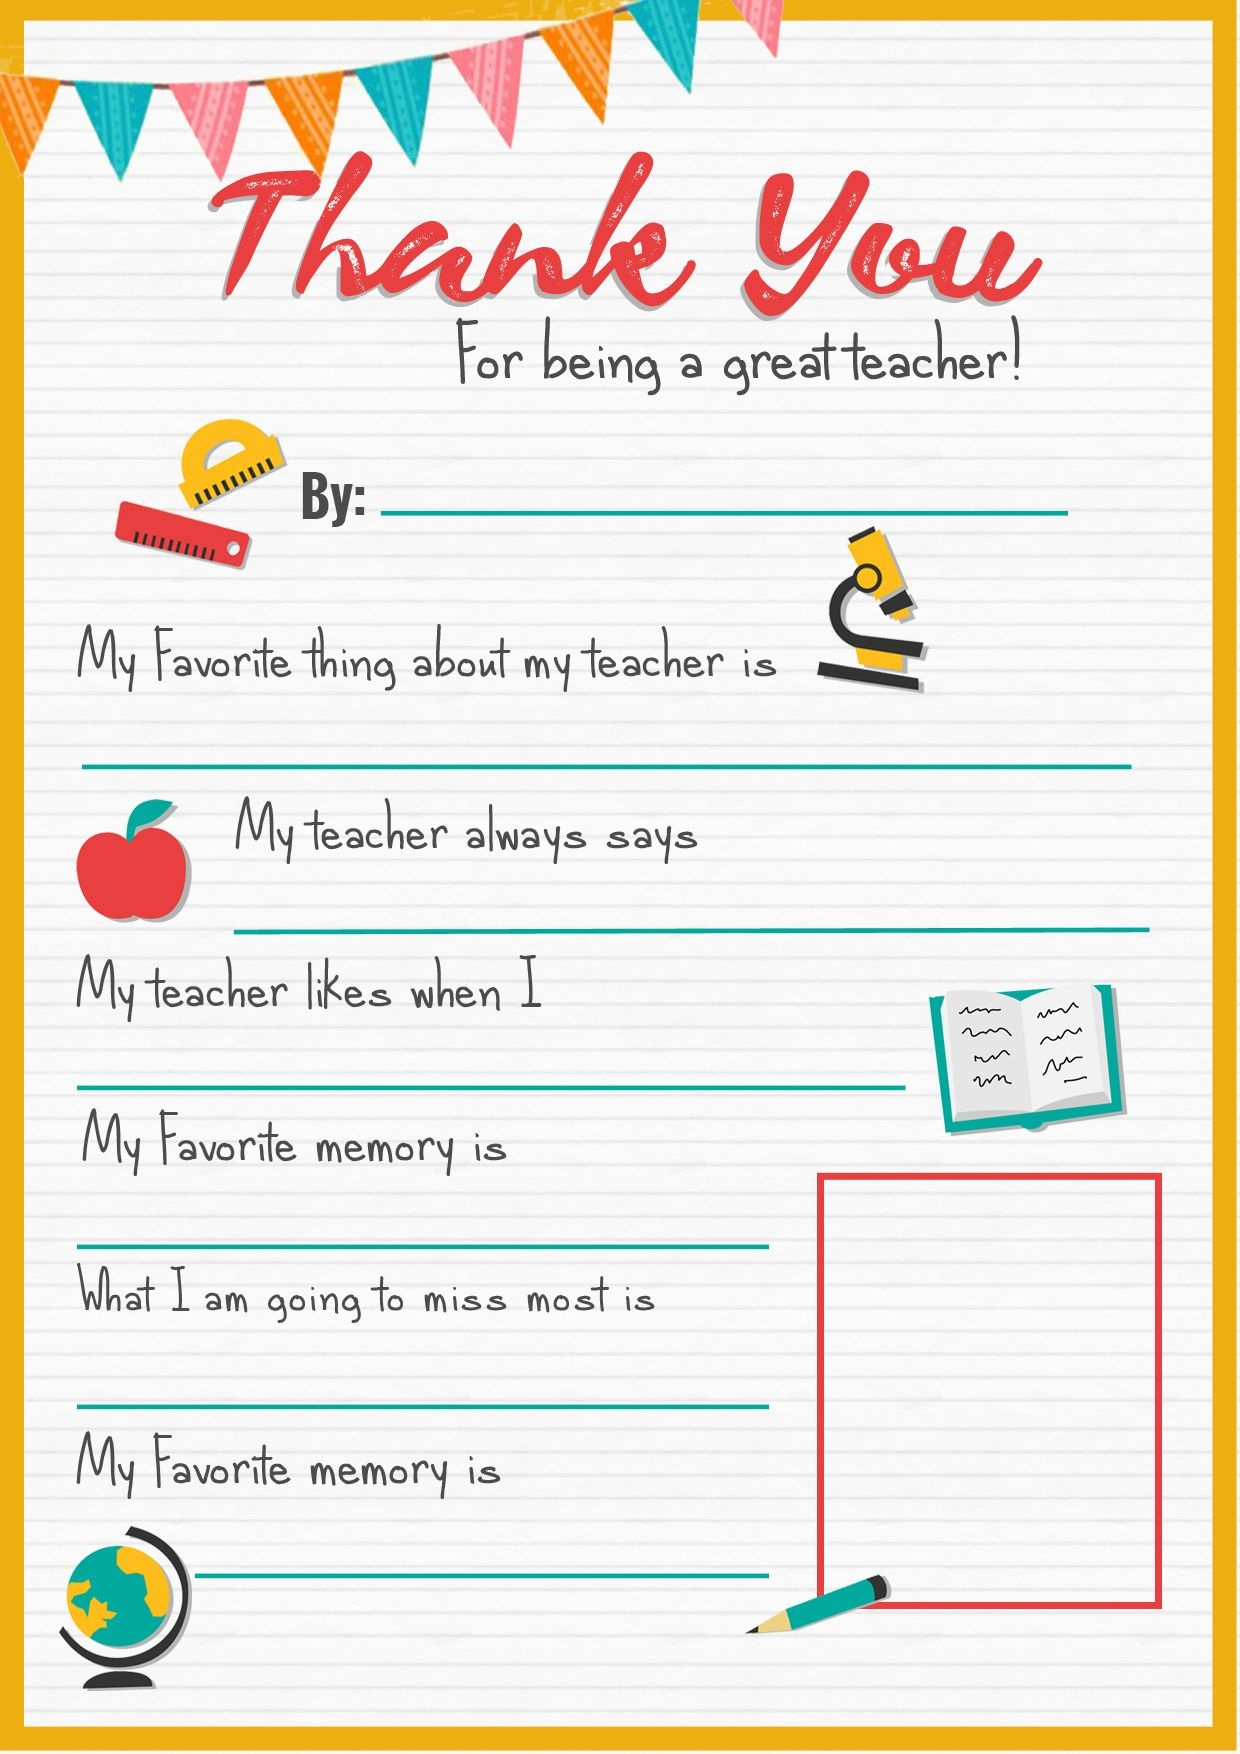 Thank You Teacher - A Free Printable   Stay At Home Mum   Back To - Thank You Teacher Printables Free